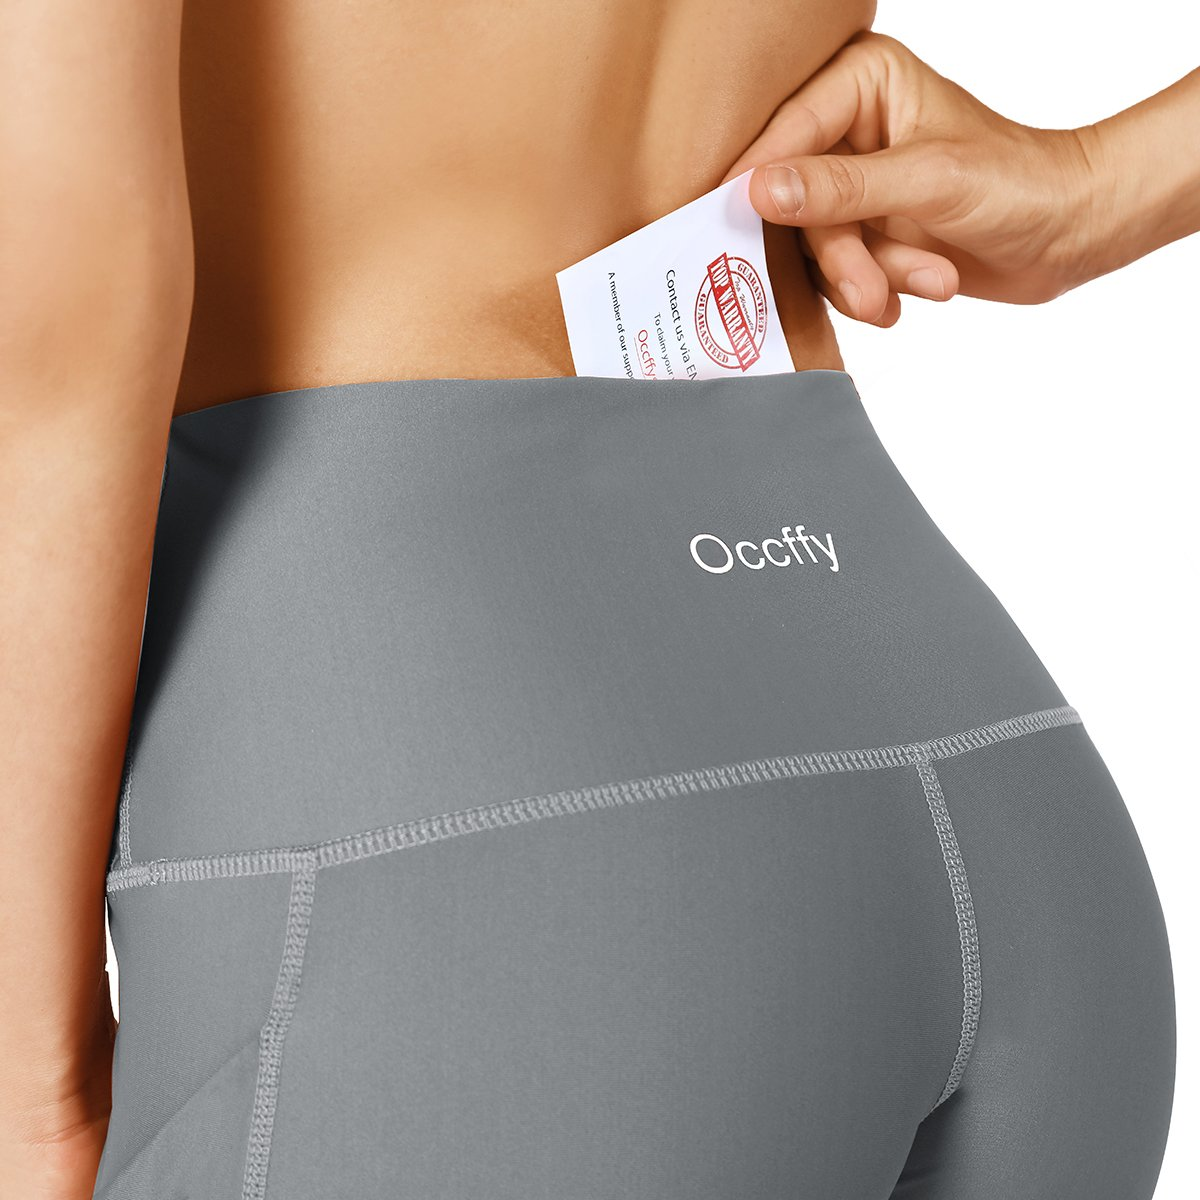 9a981d287d509 Occffy High Waist Out Pocket Yoga Pants for Women Tummy Control Workout  Clothes Ladies Leggings larger image